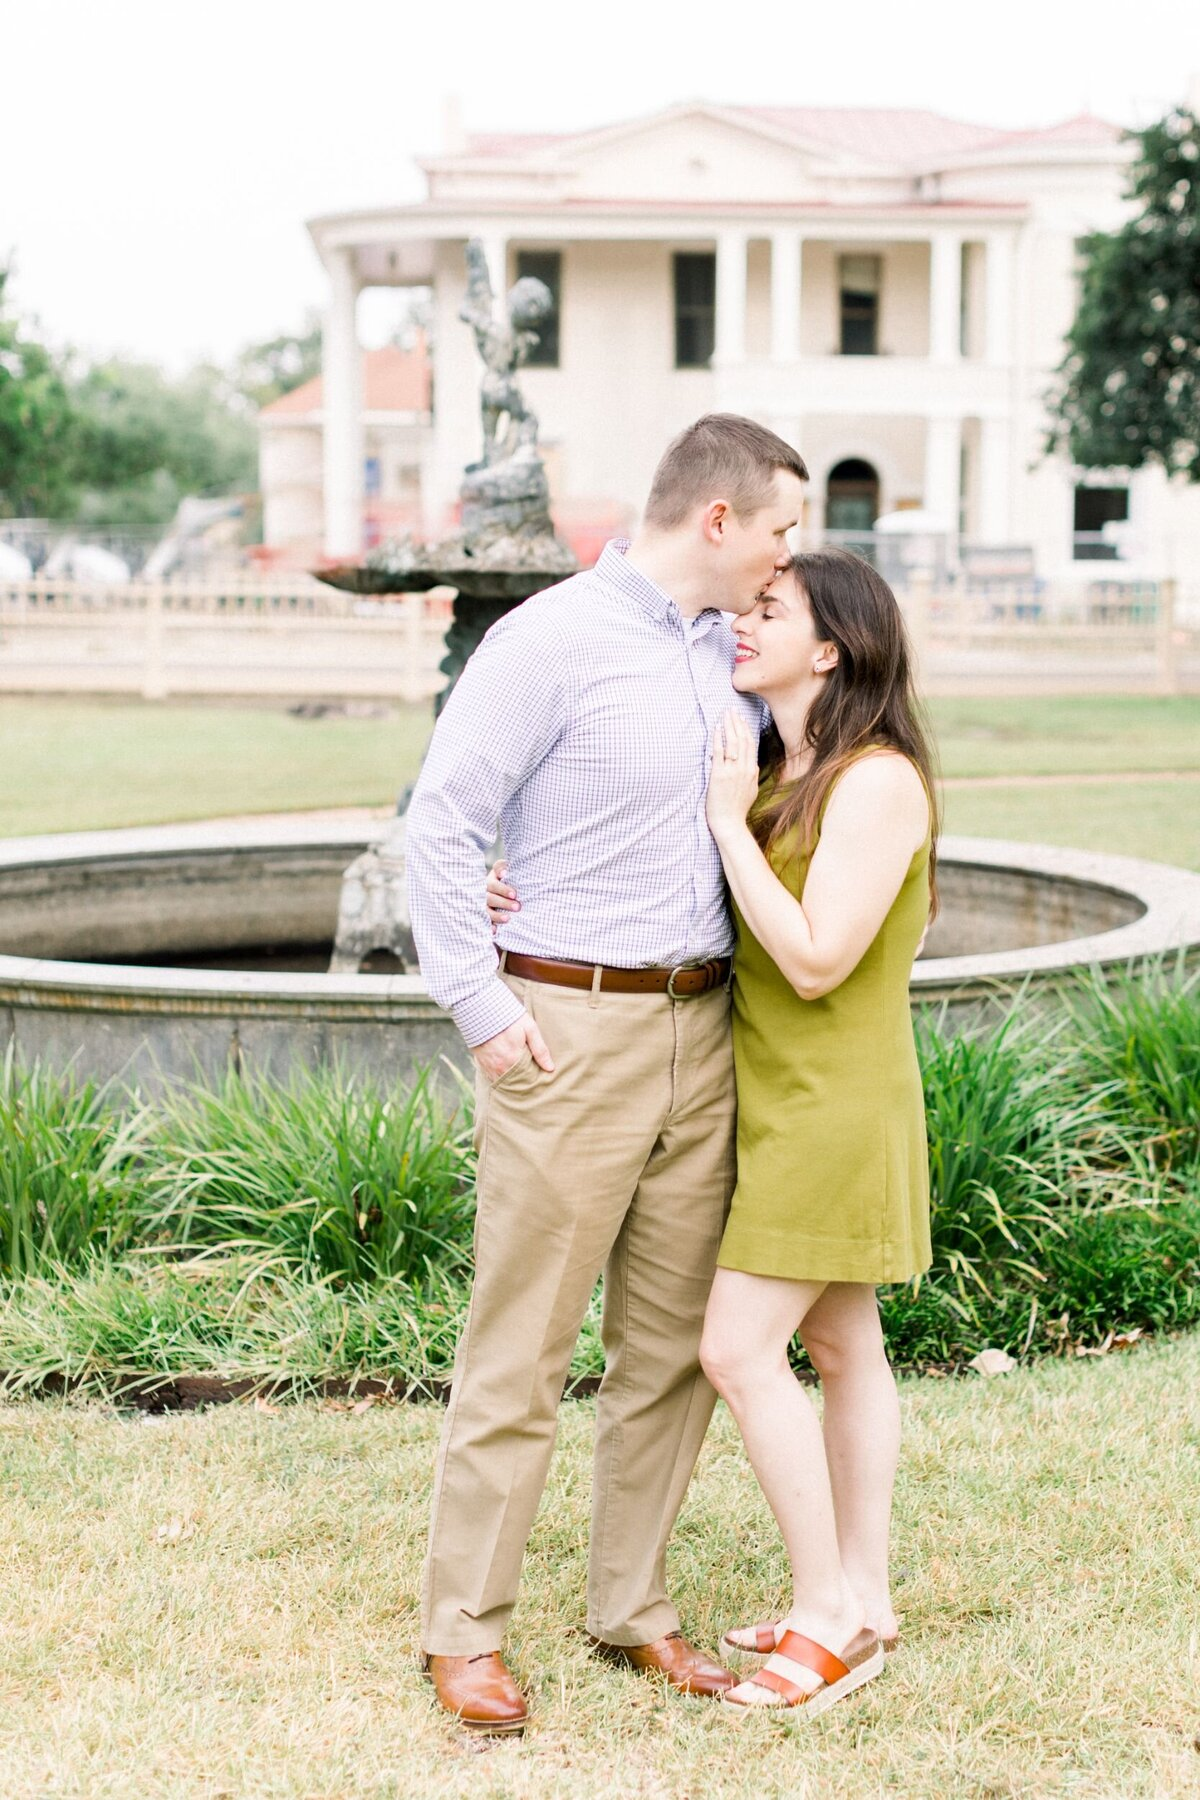 KingWilliamEngagement-AnnaKayPhotography-SanAntonioWeddingPhotographer-3